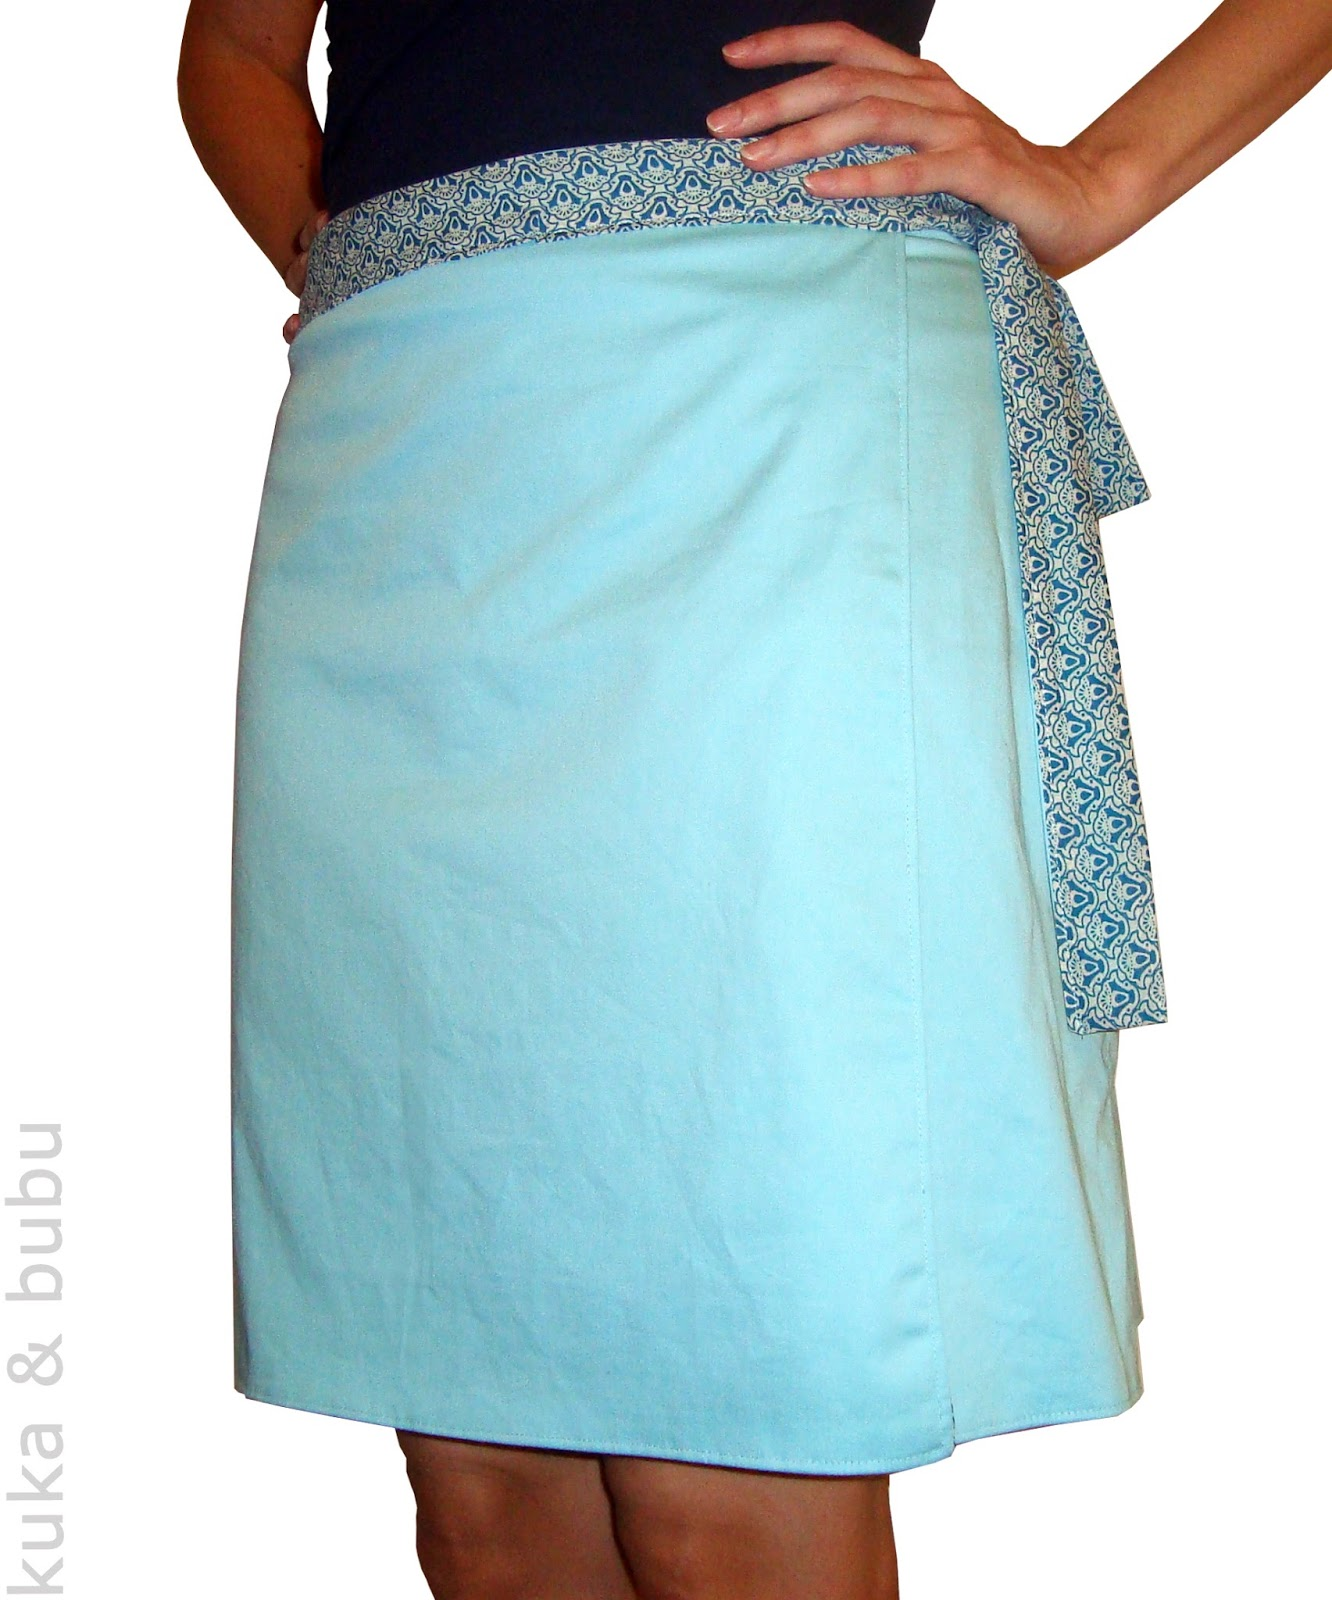 Scarf Skirt - Cut Out Keep - Make and share step by